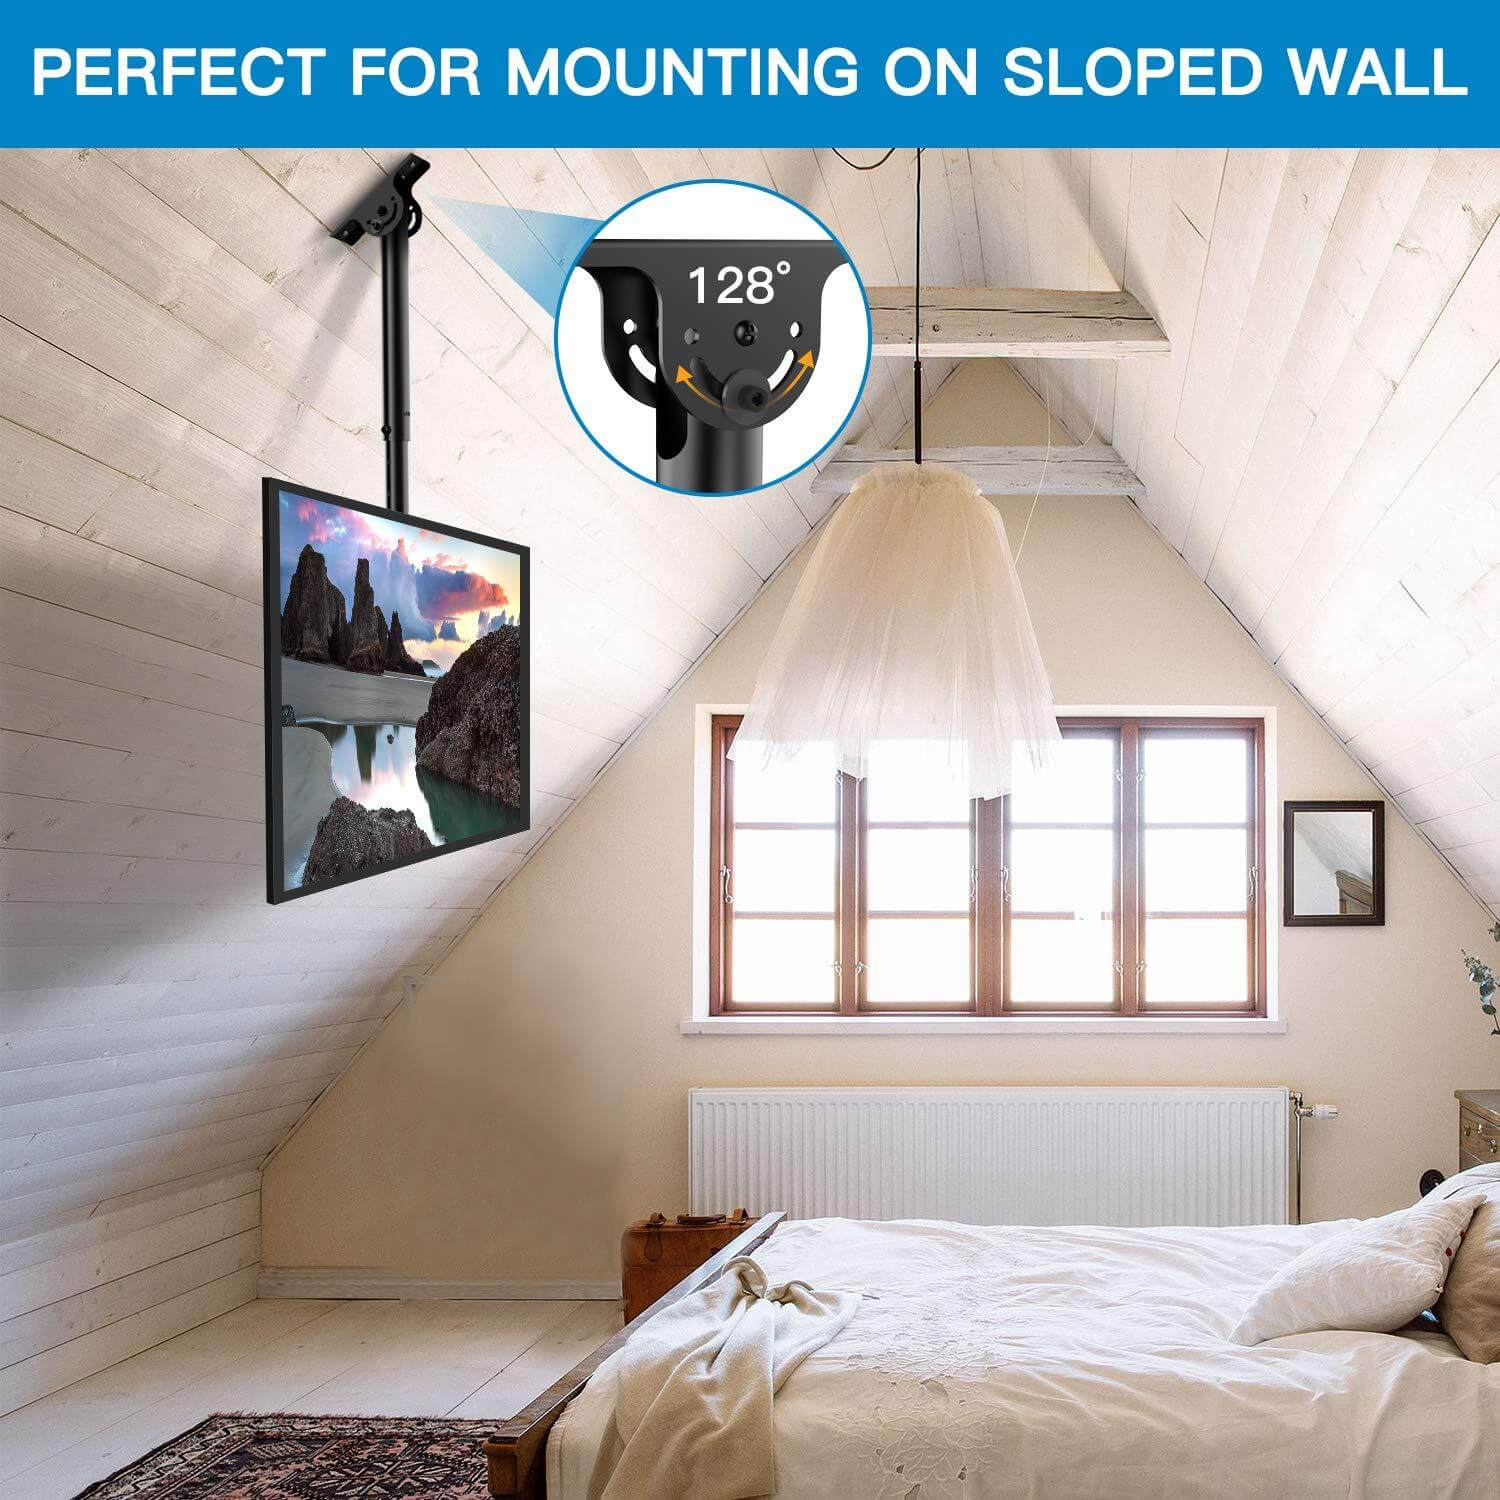 PERLESMITH PSCM2 Ceiling TV Mount fits any decor